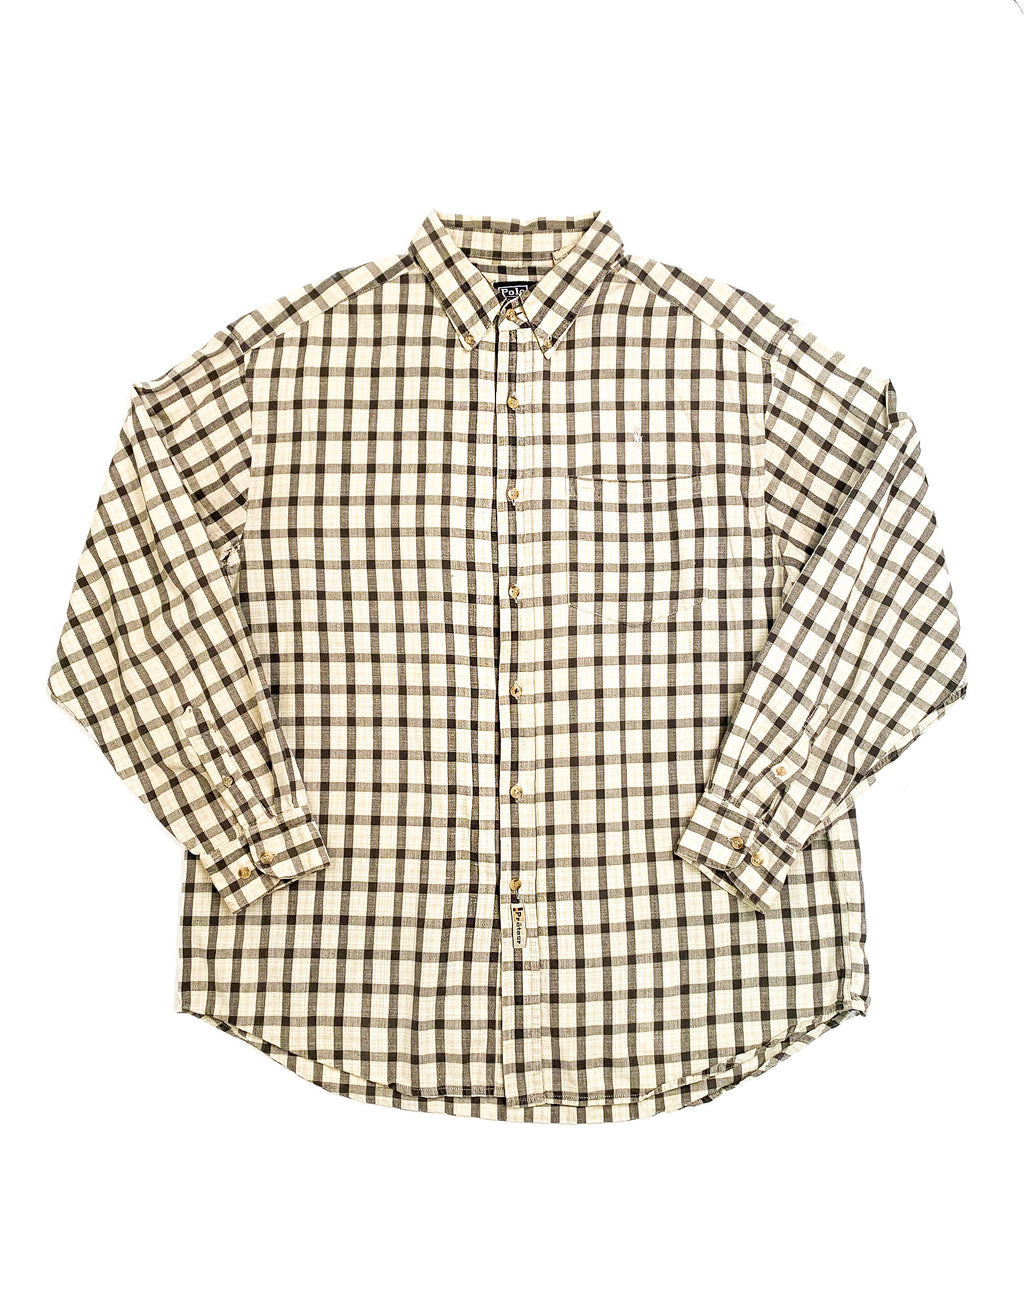 RALPH LAUREN MONOCHROME CHECK SHIRT